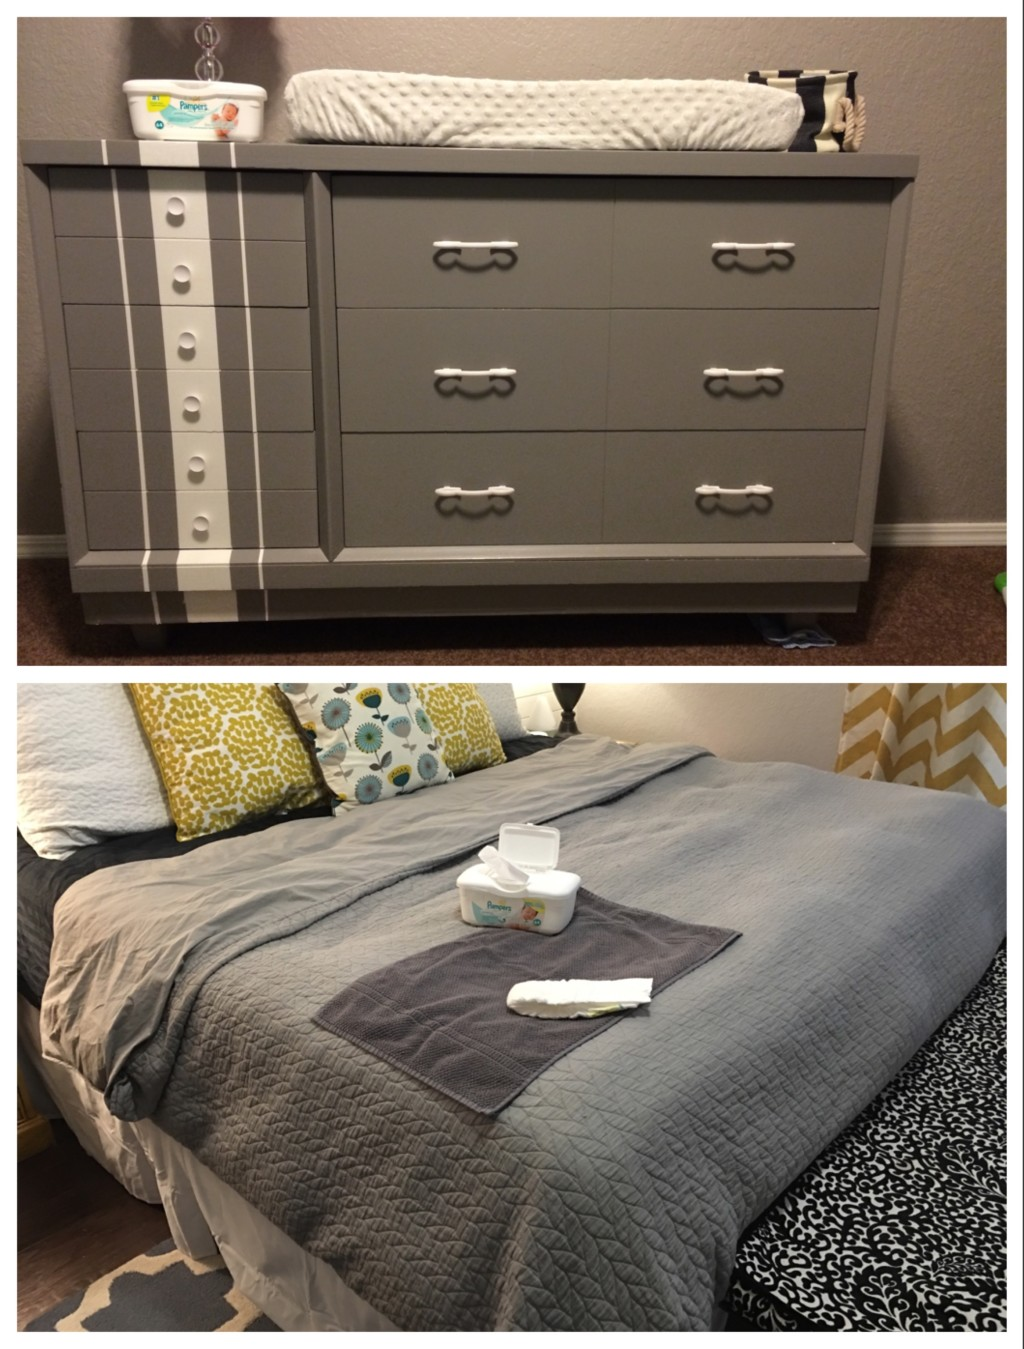 Changing table refinished for second baby vs designated changing area for third baby